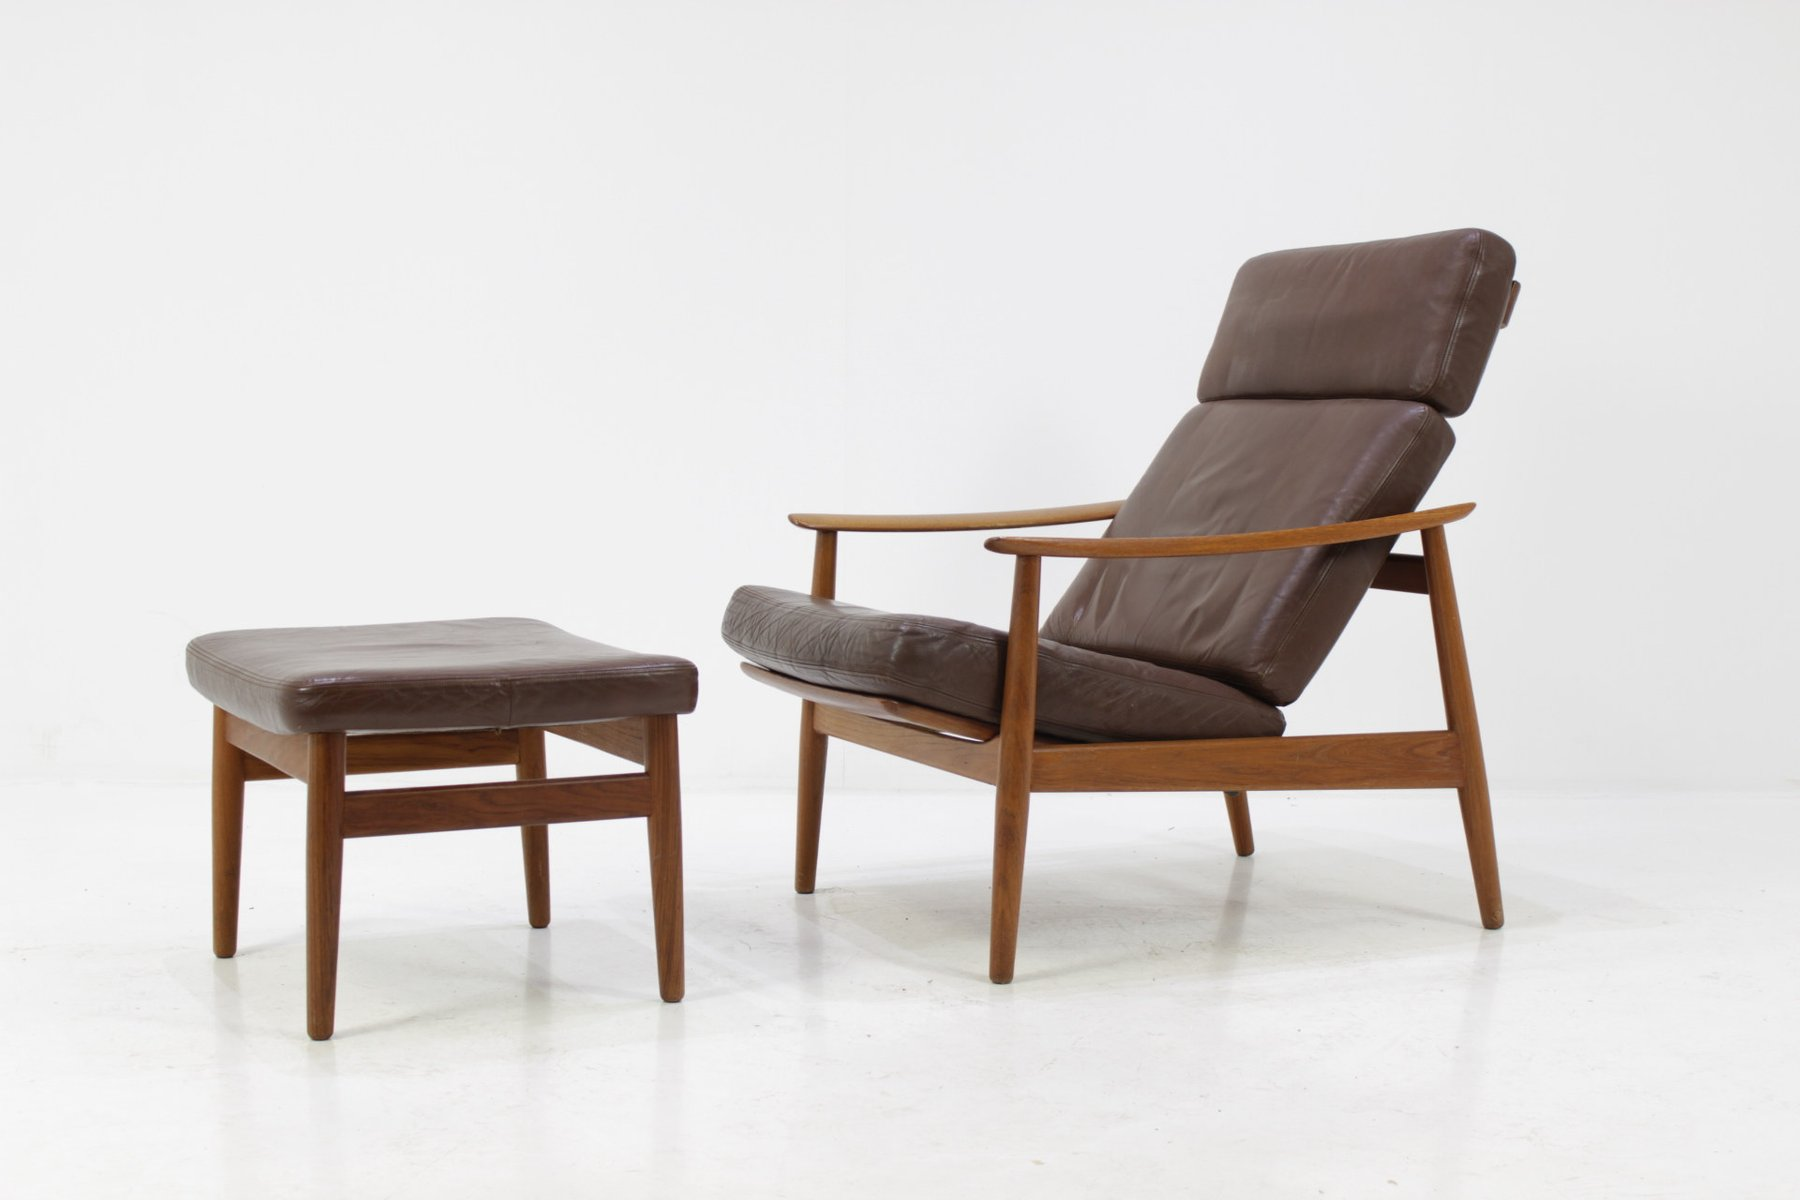 Wooden easy chair models - Vintage Model Fd 164 Reclining Easy Chair Footstool By Arne Vodder For France S N